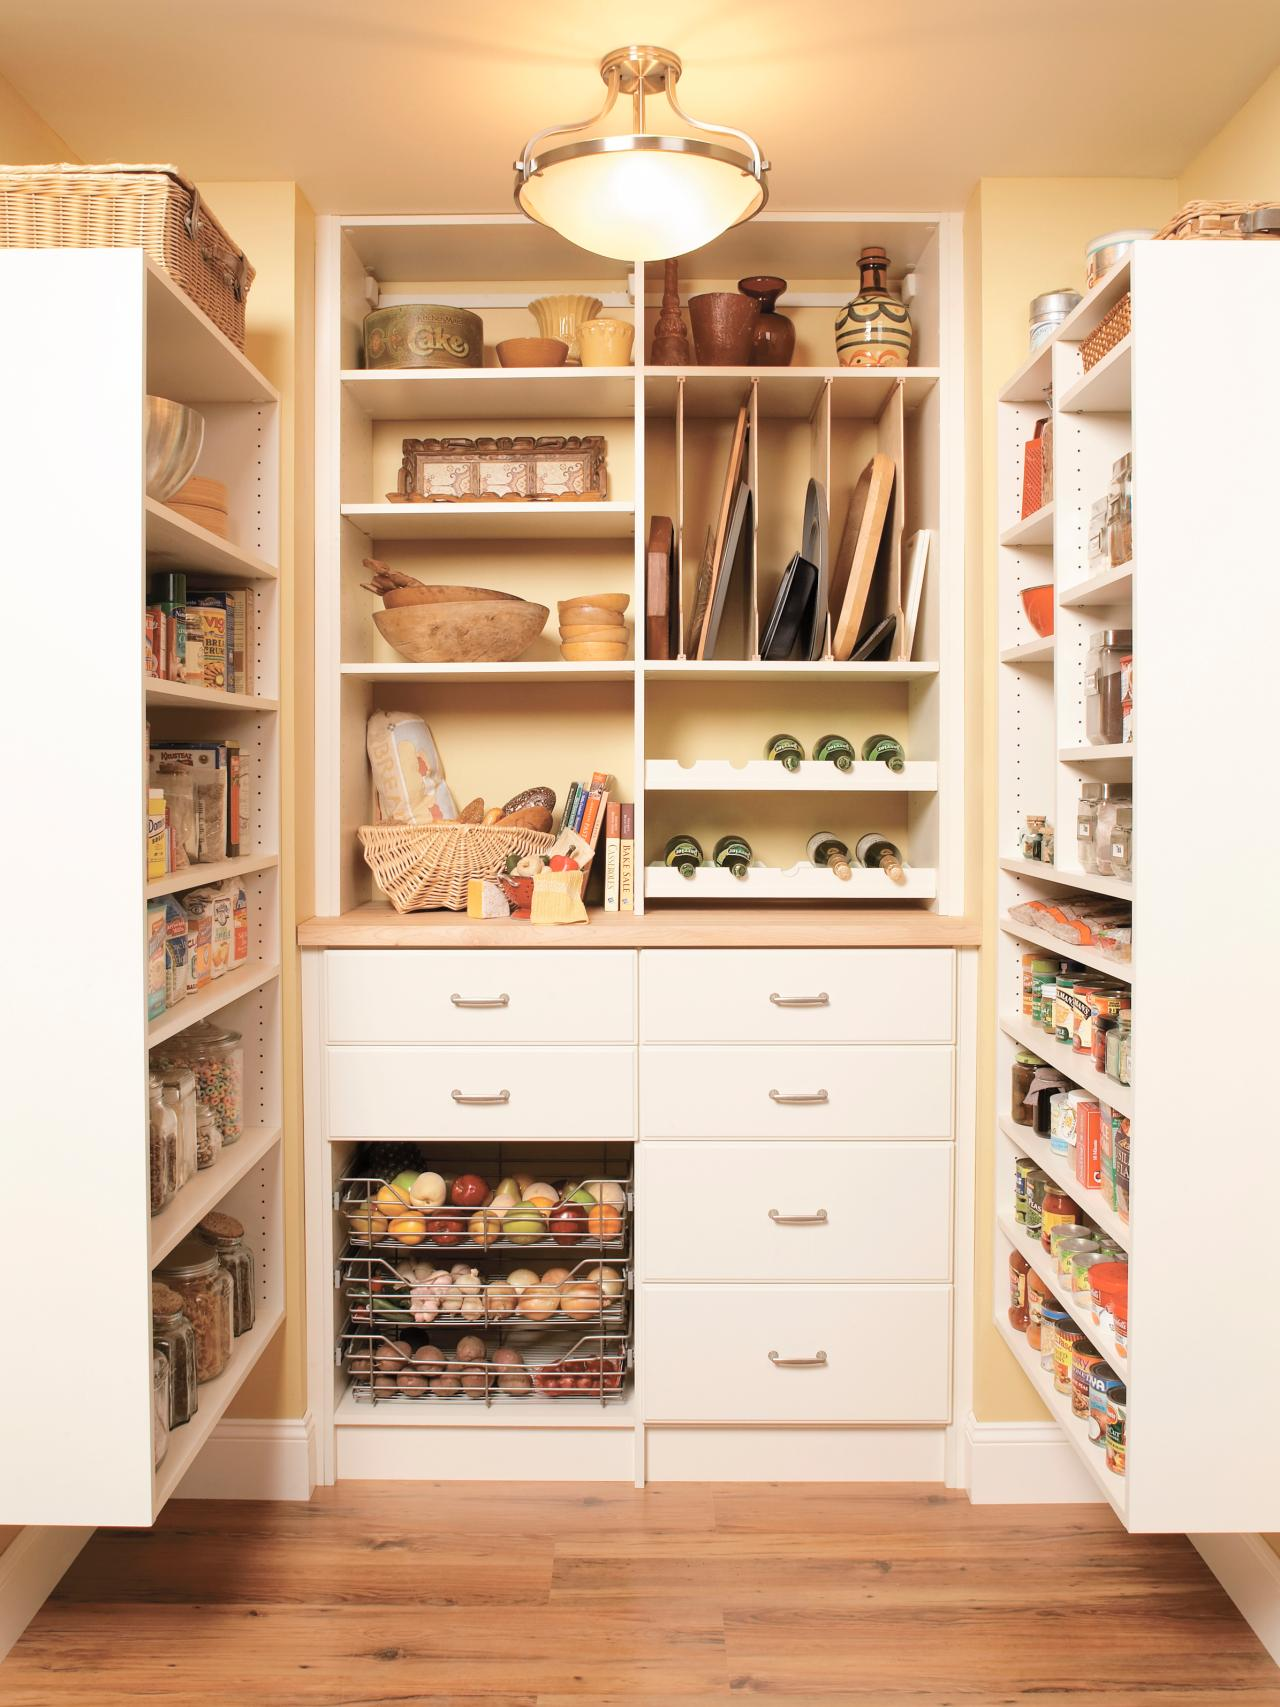 Perfect Optimize Your Larger Pantry With A Custom Storage System.